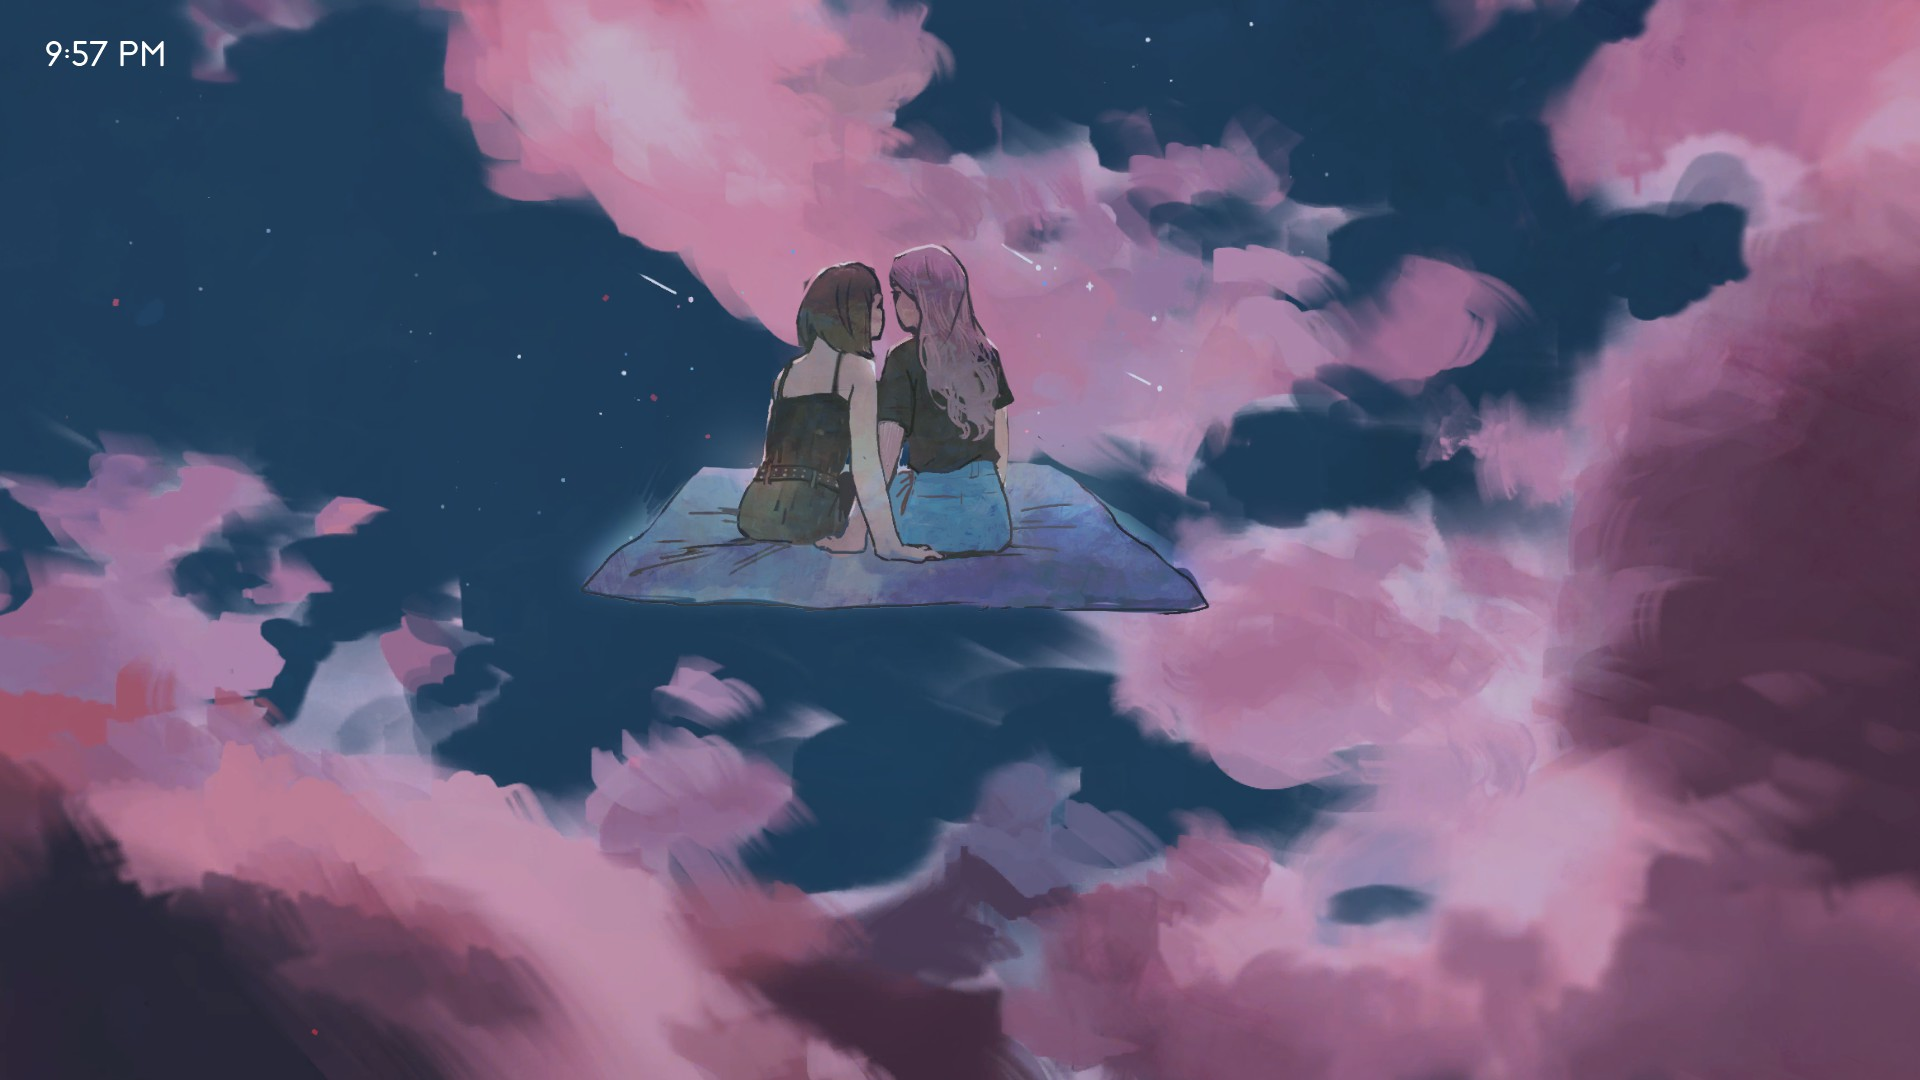 pink cloudy sky, two girls sitting on blanket suspended mid-screen, 6/10 free steam games